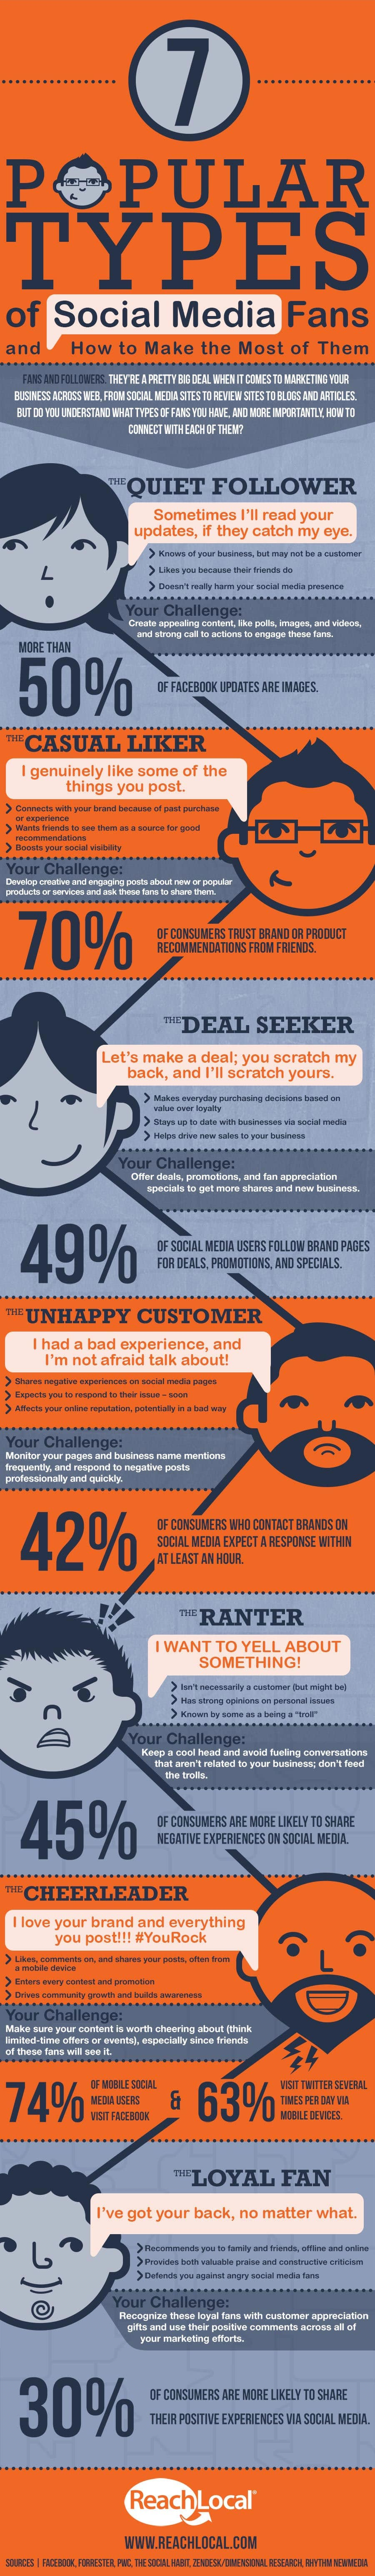 7 Types Of Social Media Fans And Followers Of Brands [Infographic]